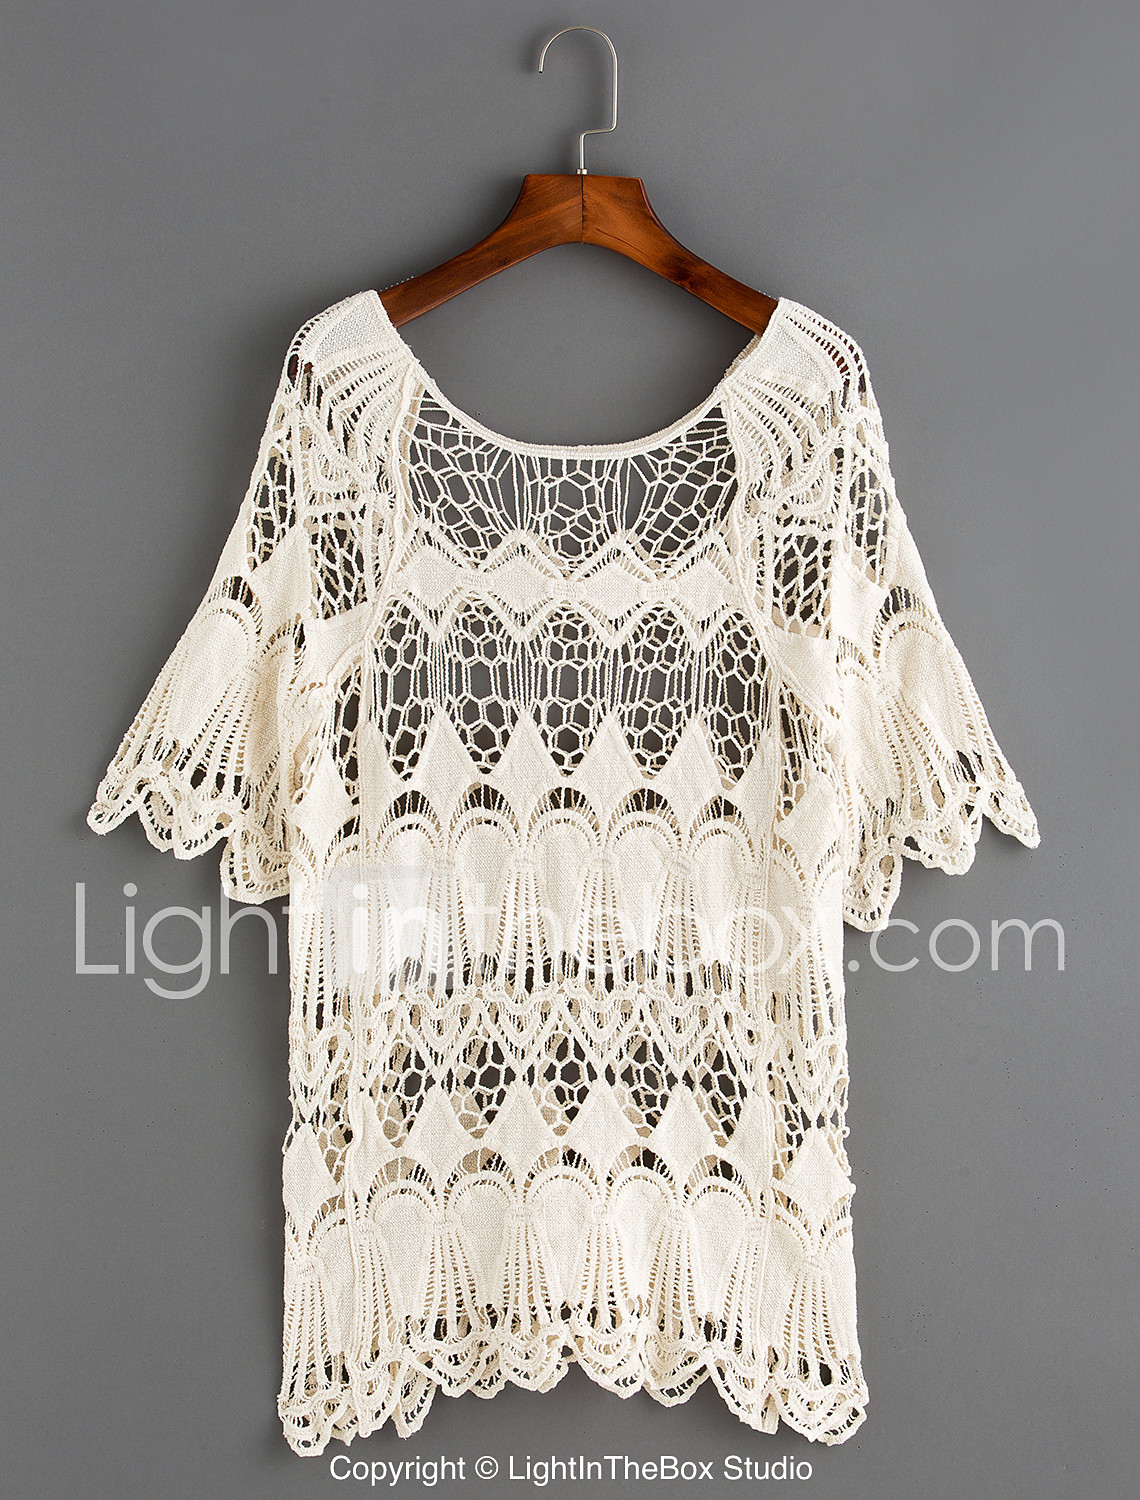 6a2e12177c1913 Women's Boho Beige Cover-Up Swimwear - Solid Colored Lace, Cotton One-Size